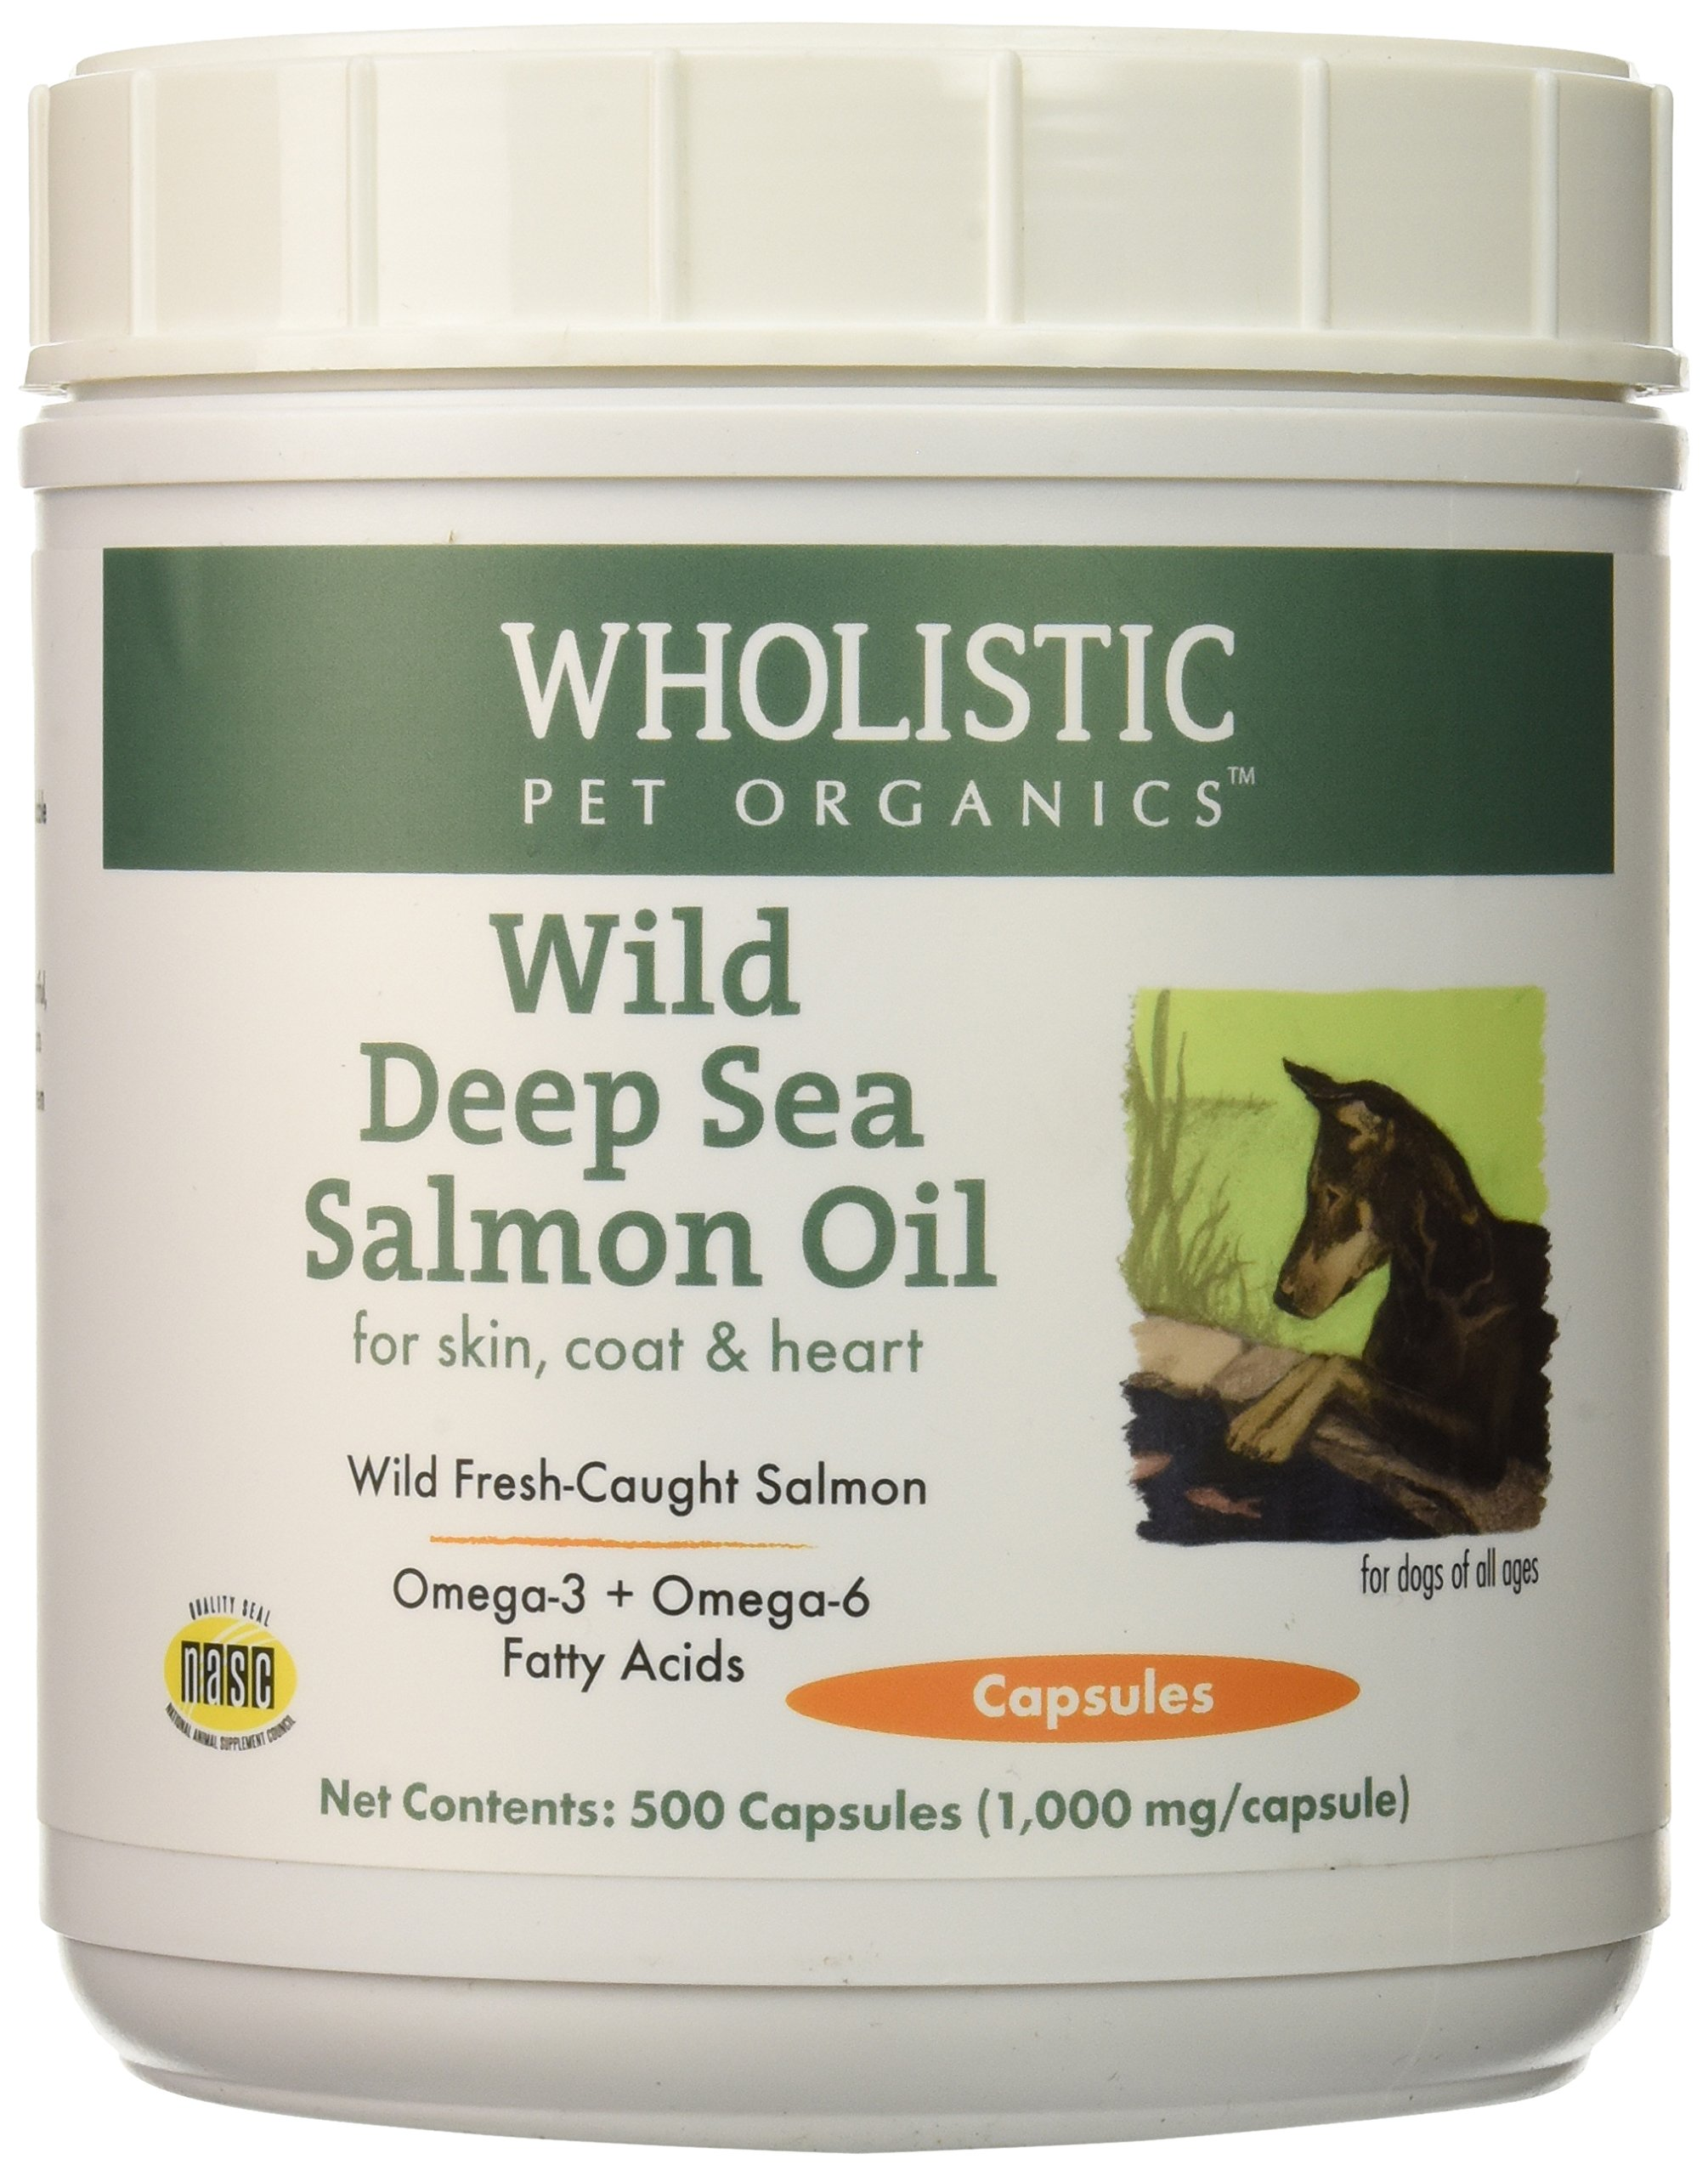 Wholistic Pet Organics Wild Deep Sea Salmon Oil 500 Capsules Supplement by Wholistic Pet Organics